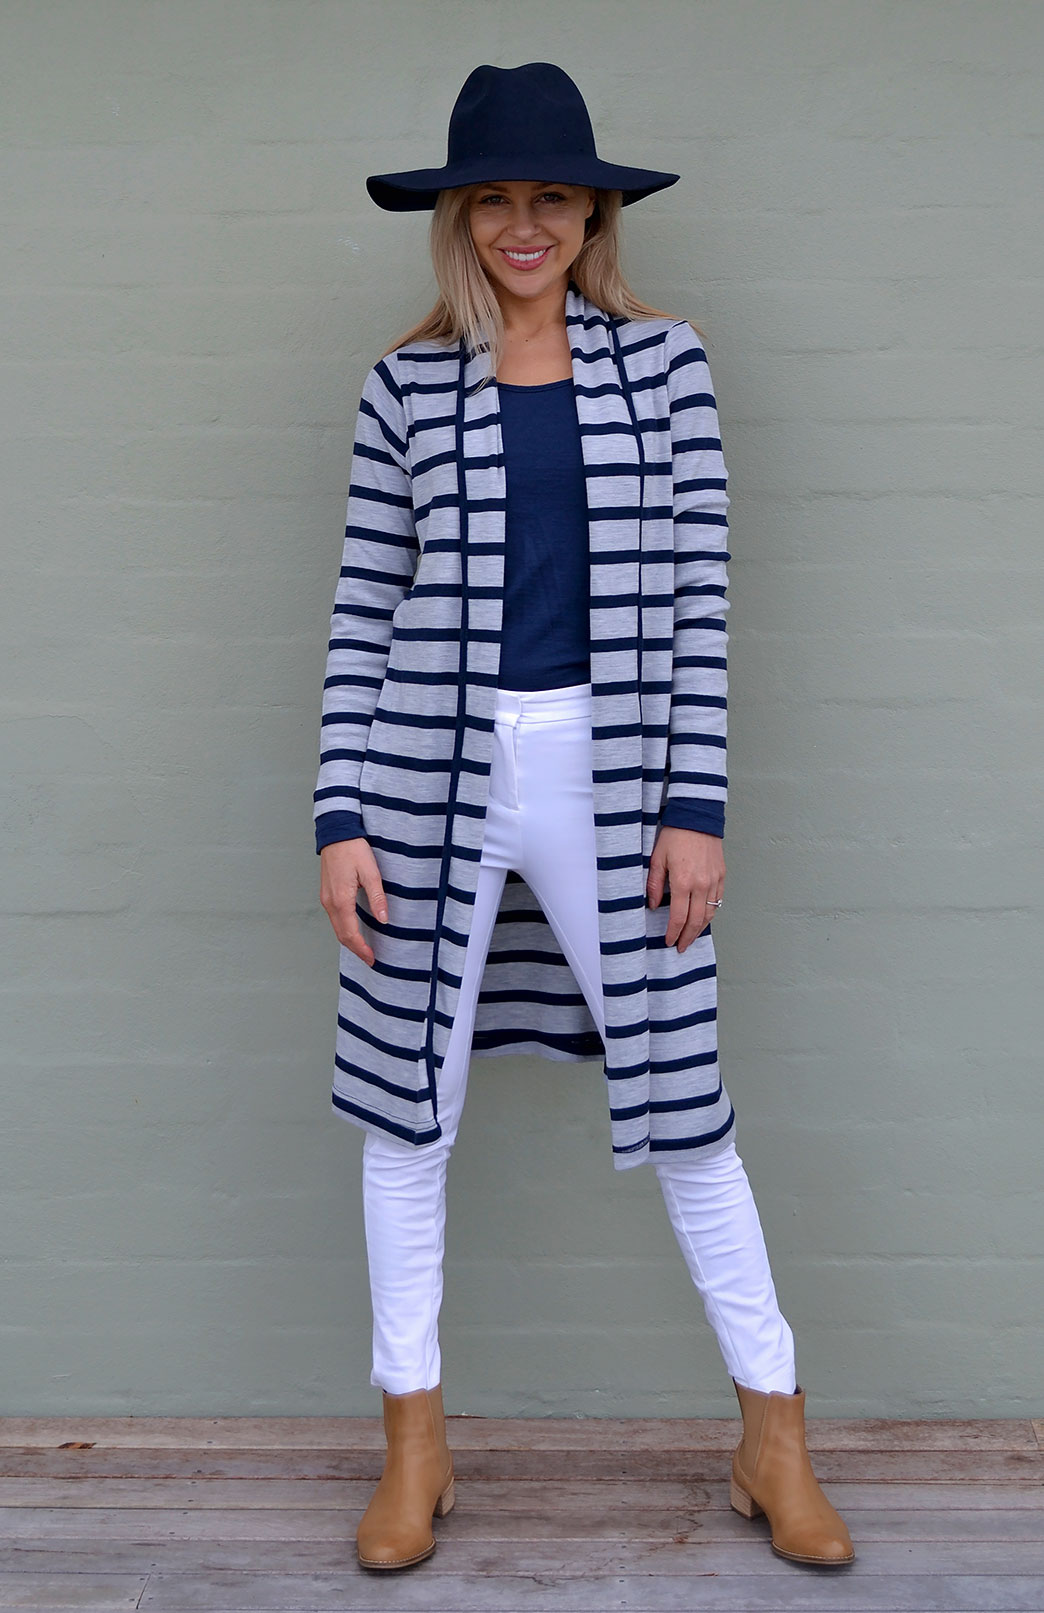 Long Drape Cardigan - Heavyweight - Women's Merino Wool Heavy Weight Striped Long Drape Cardigan - Smitten Merino Tasmania Australia